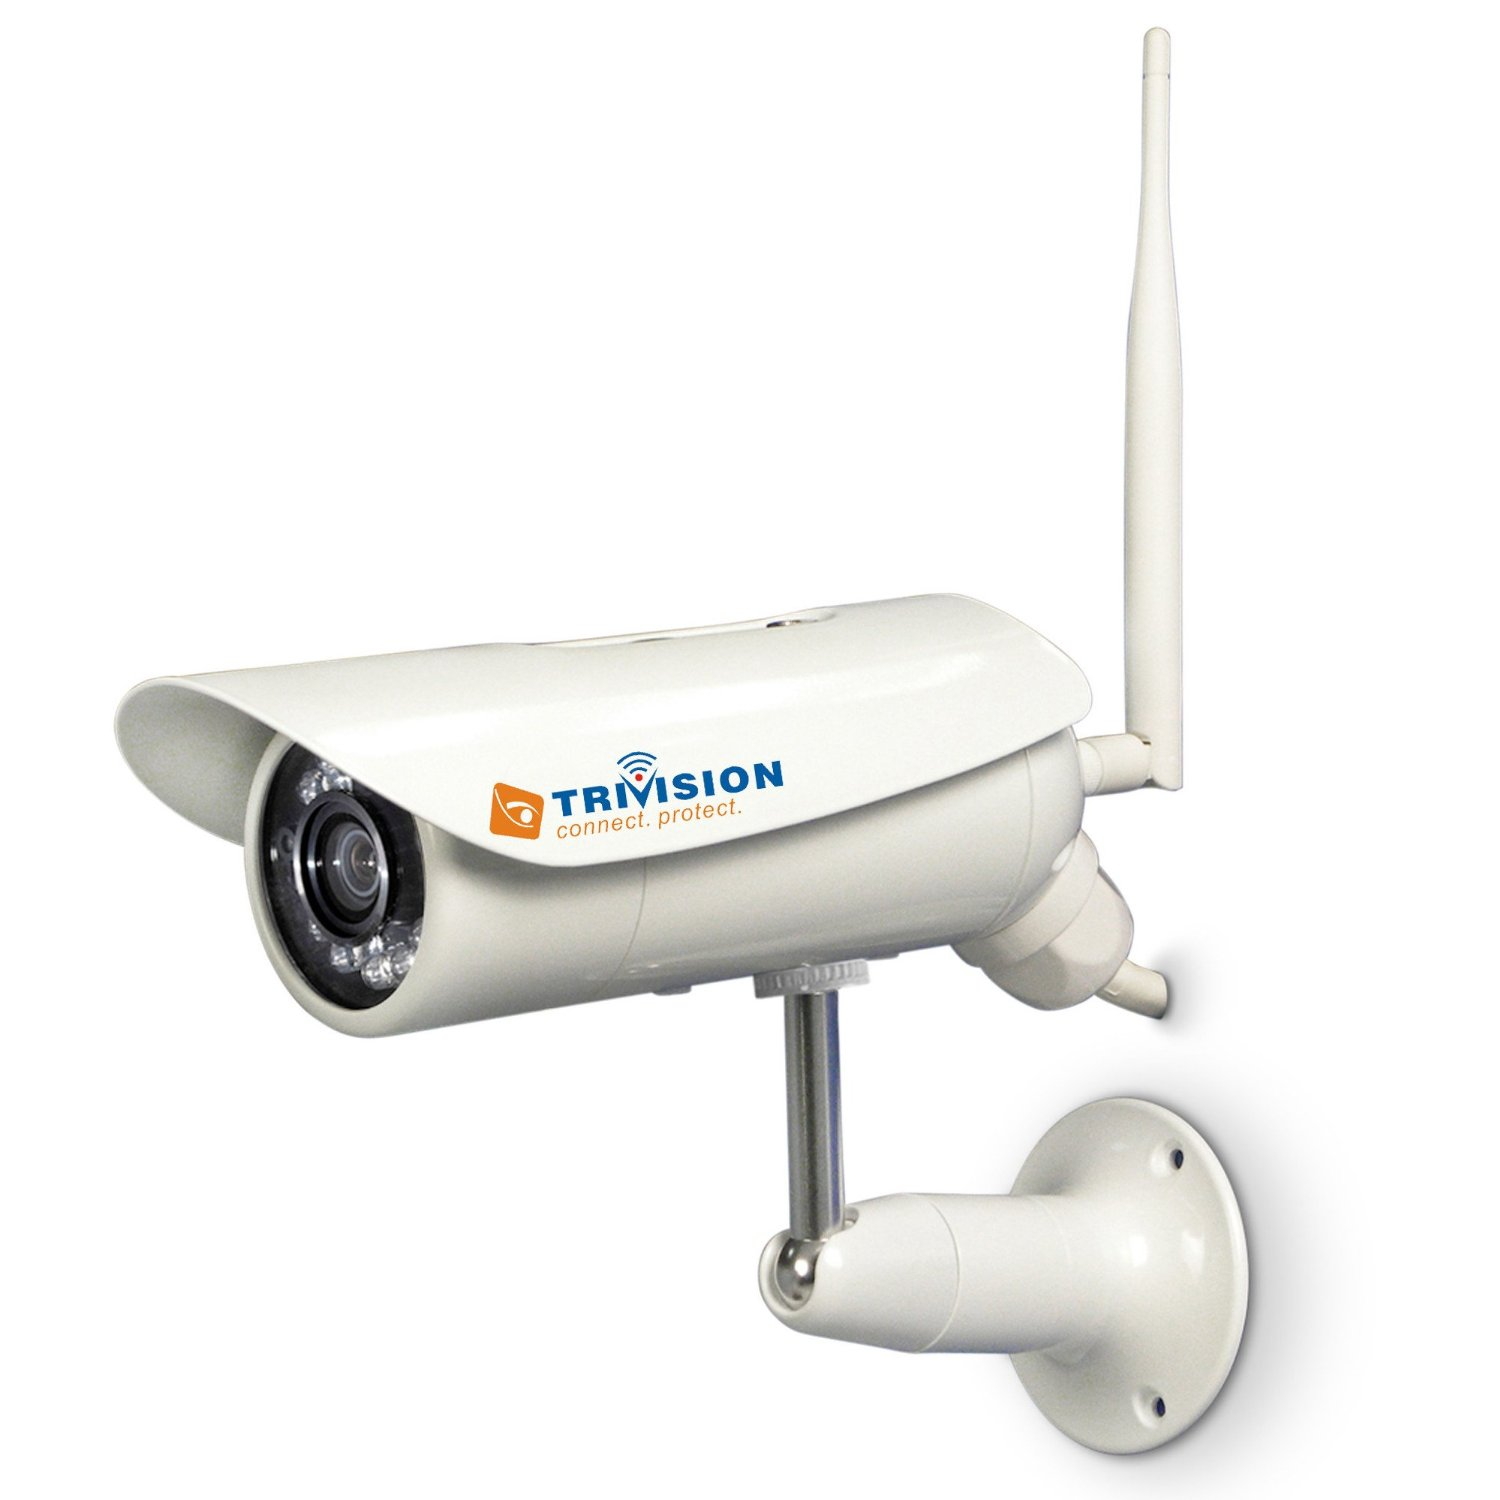 TriVision Outdoor Security Camera Systems